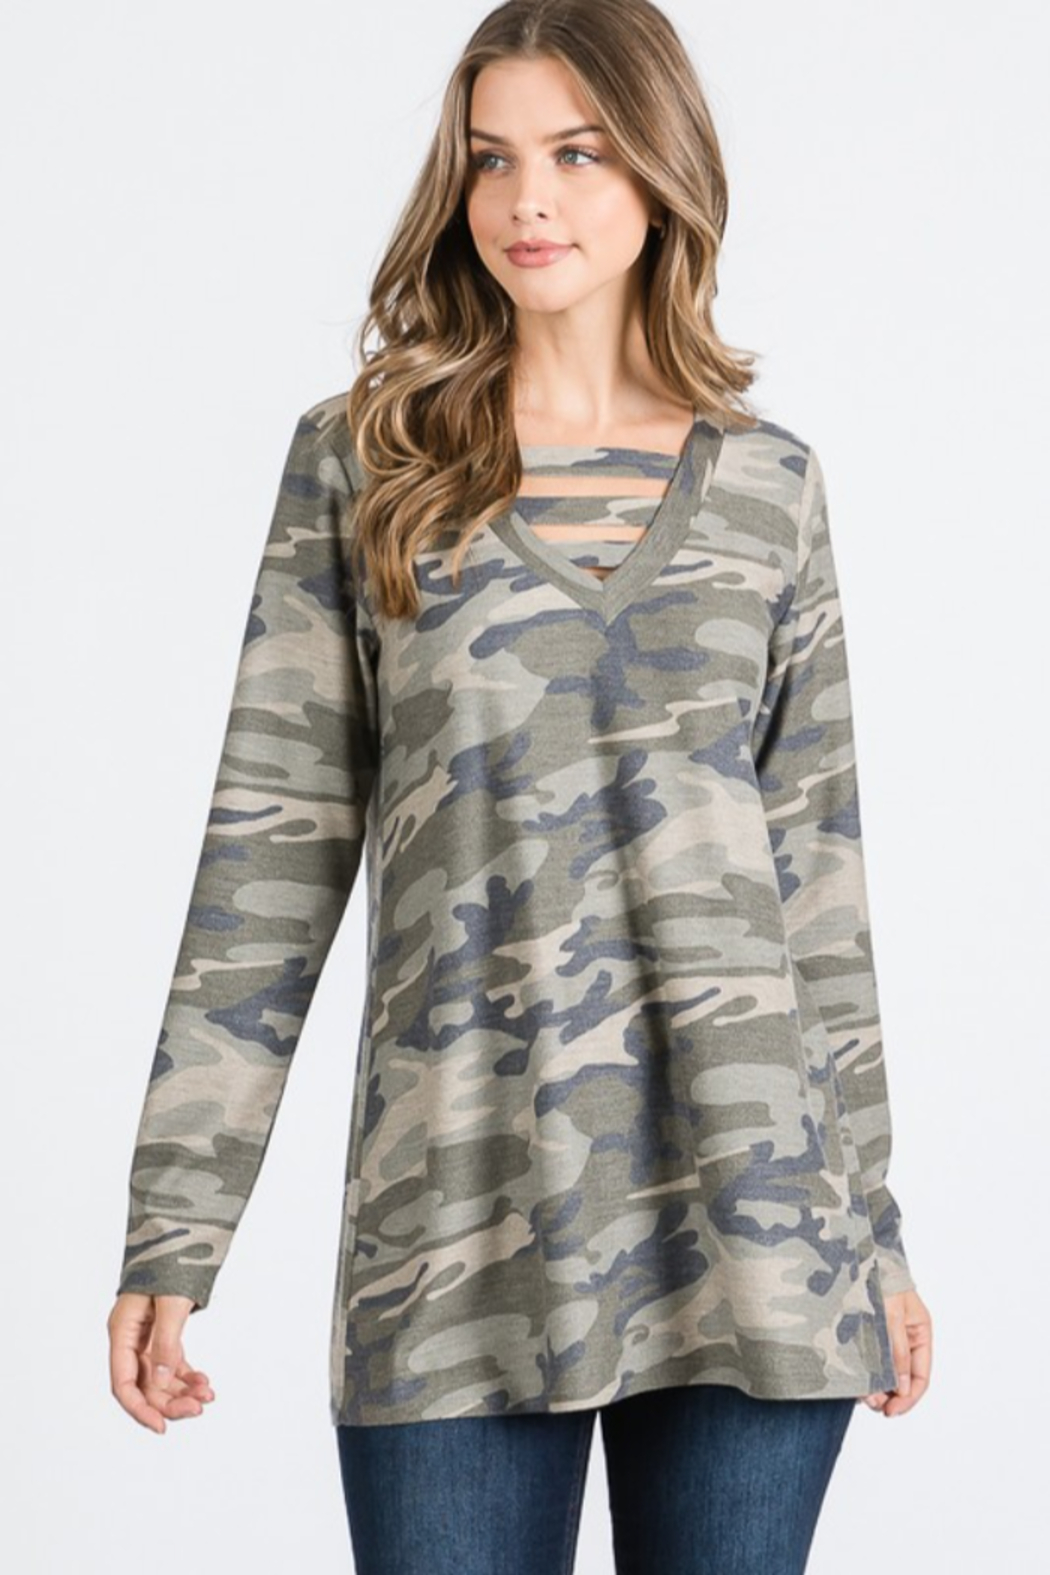 Heimish Caged V Neck Camo Top - Front Cropped Image